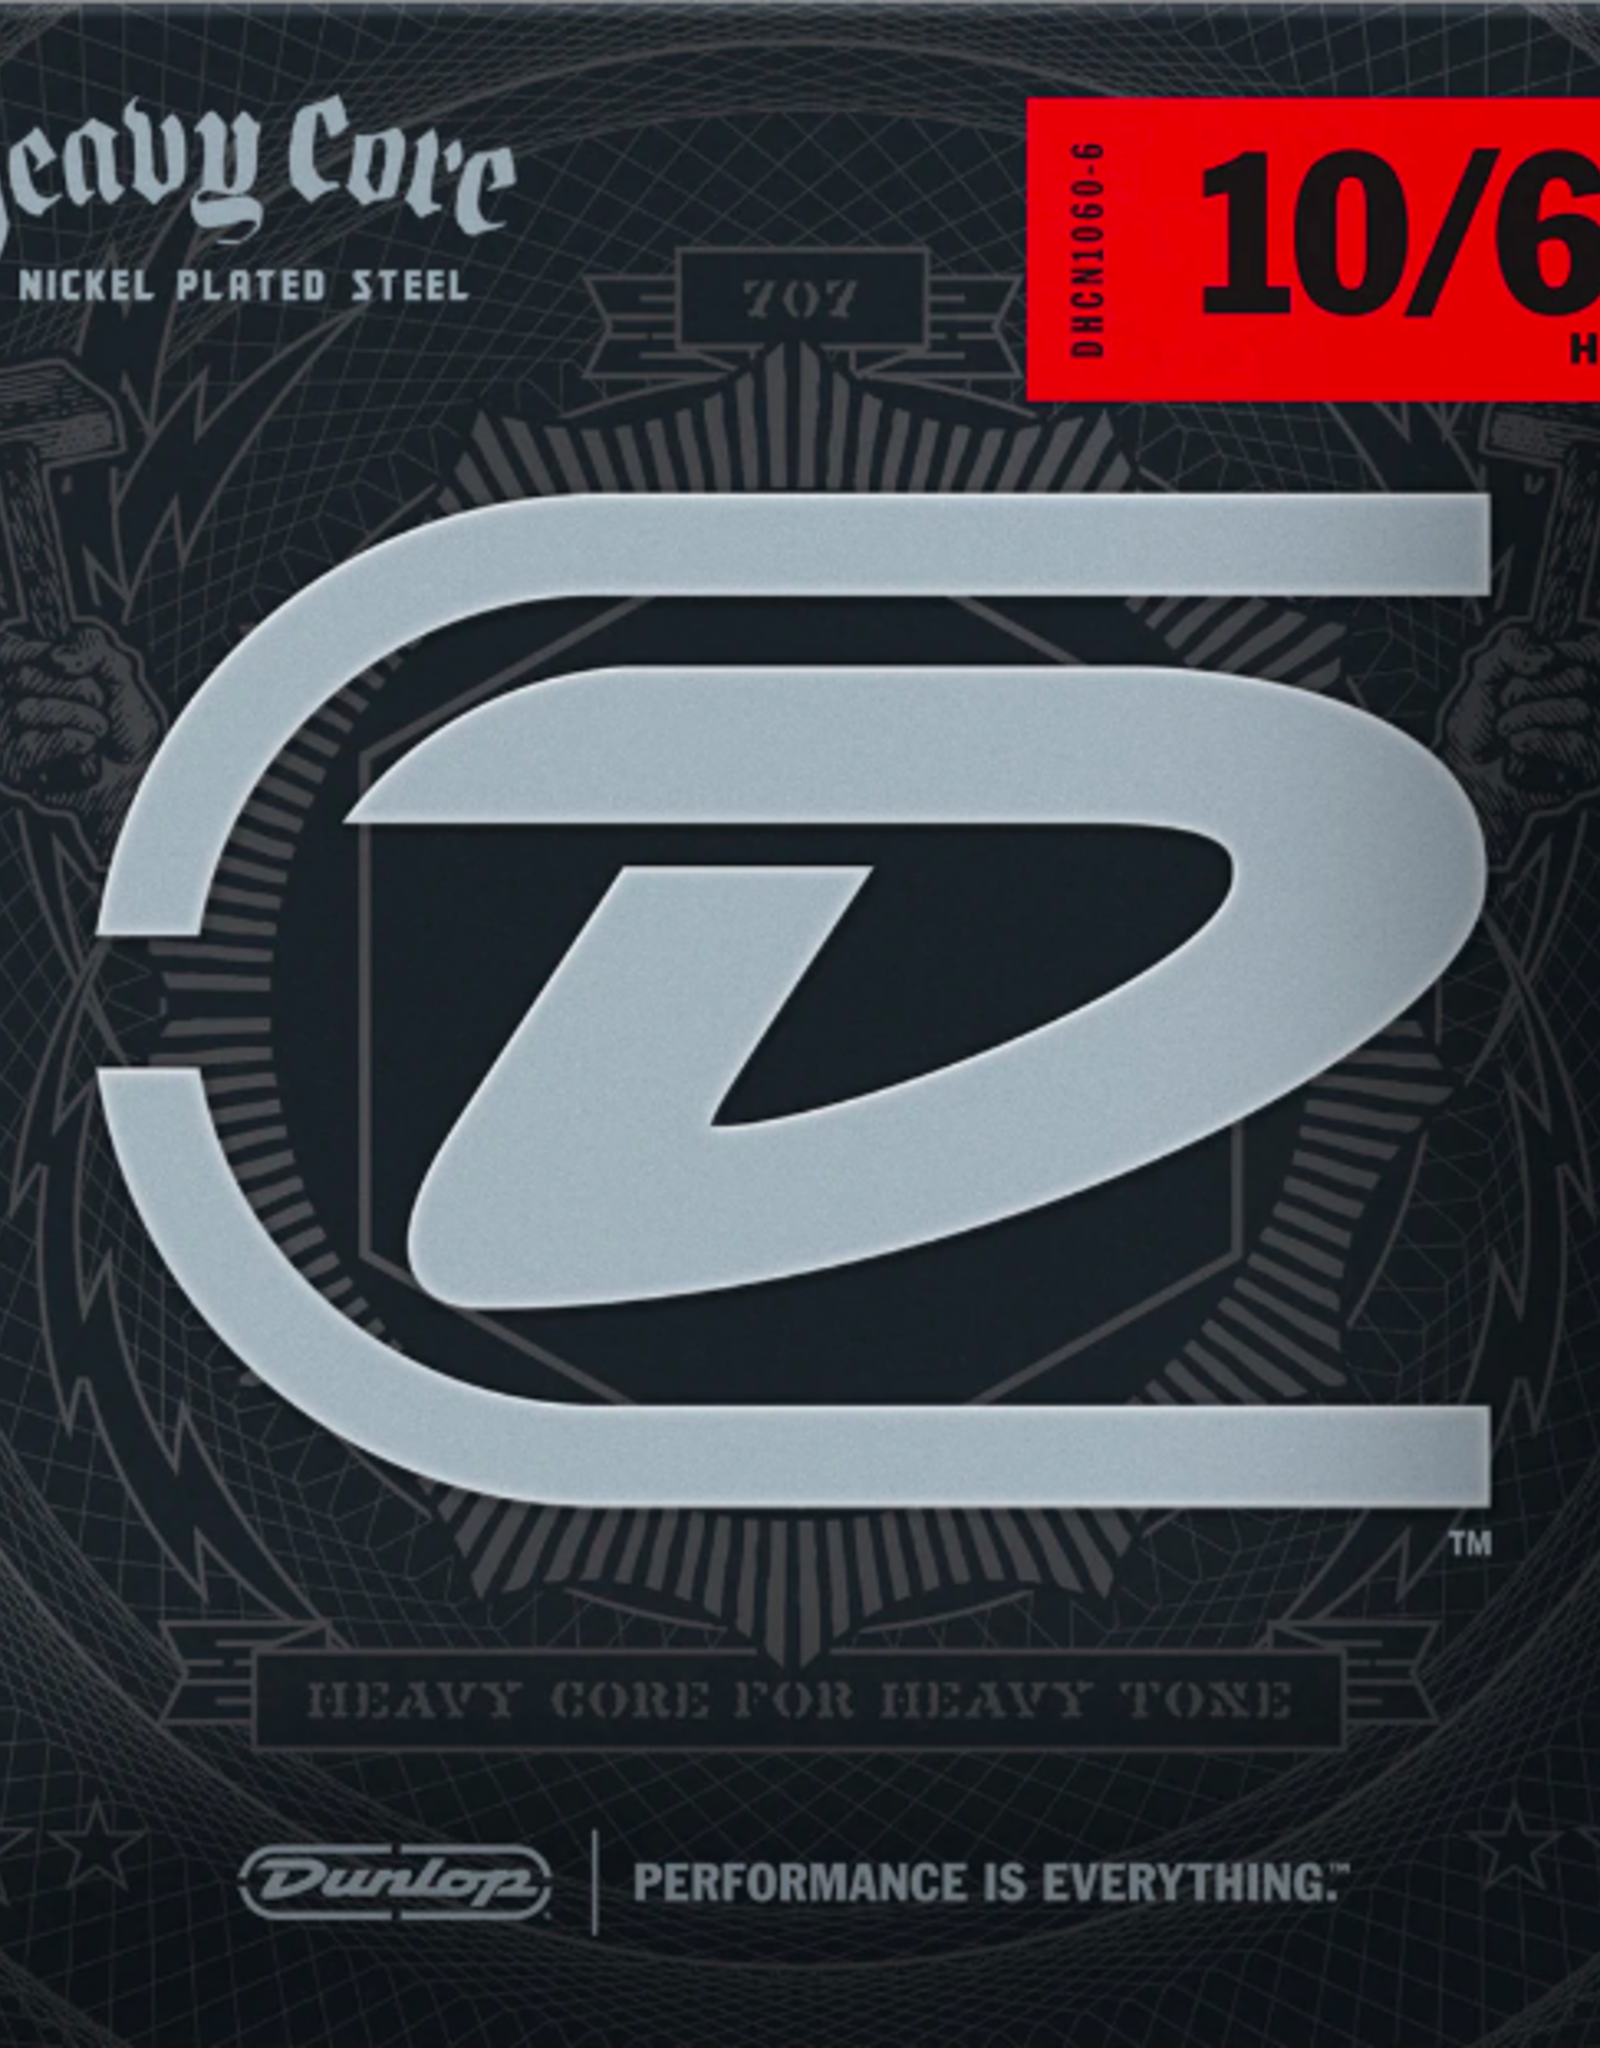 Dunlop Dunlop Heavy Core Electric Guitar Strings 10-60